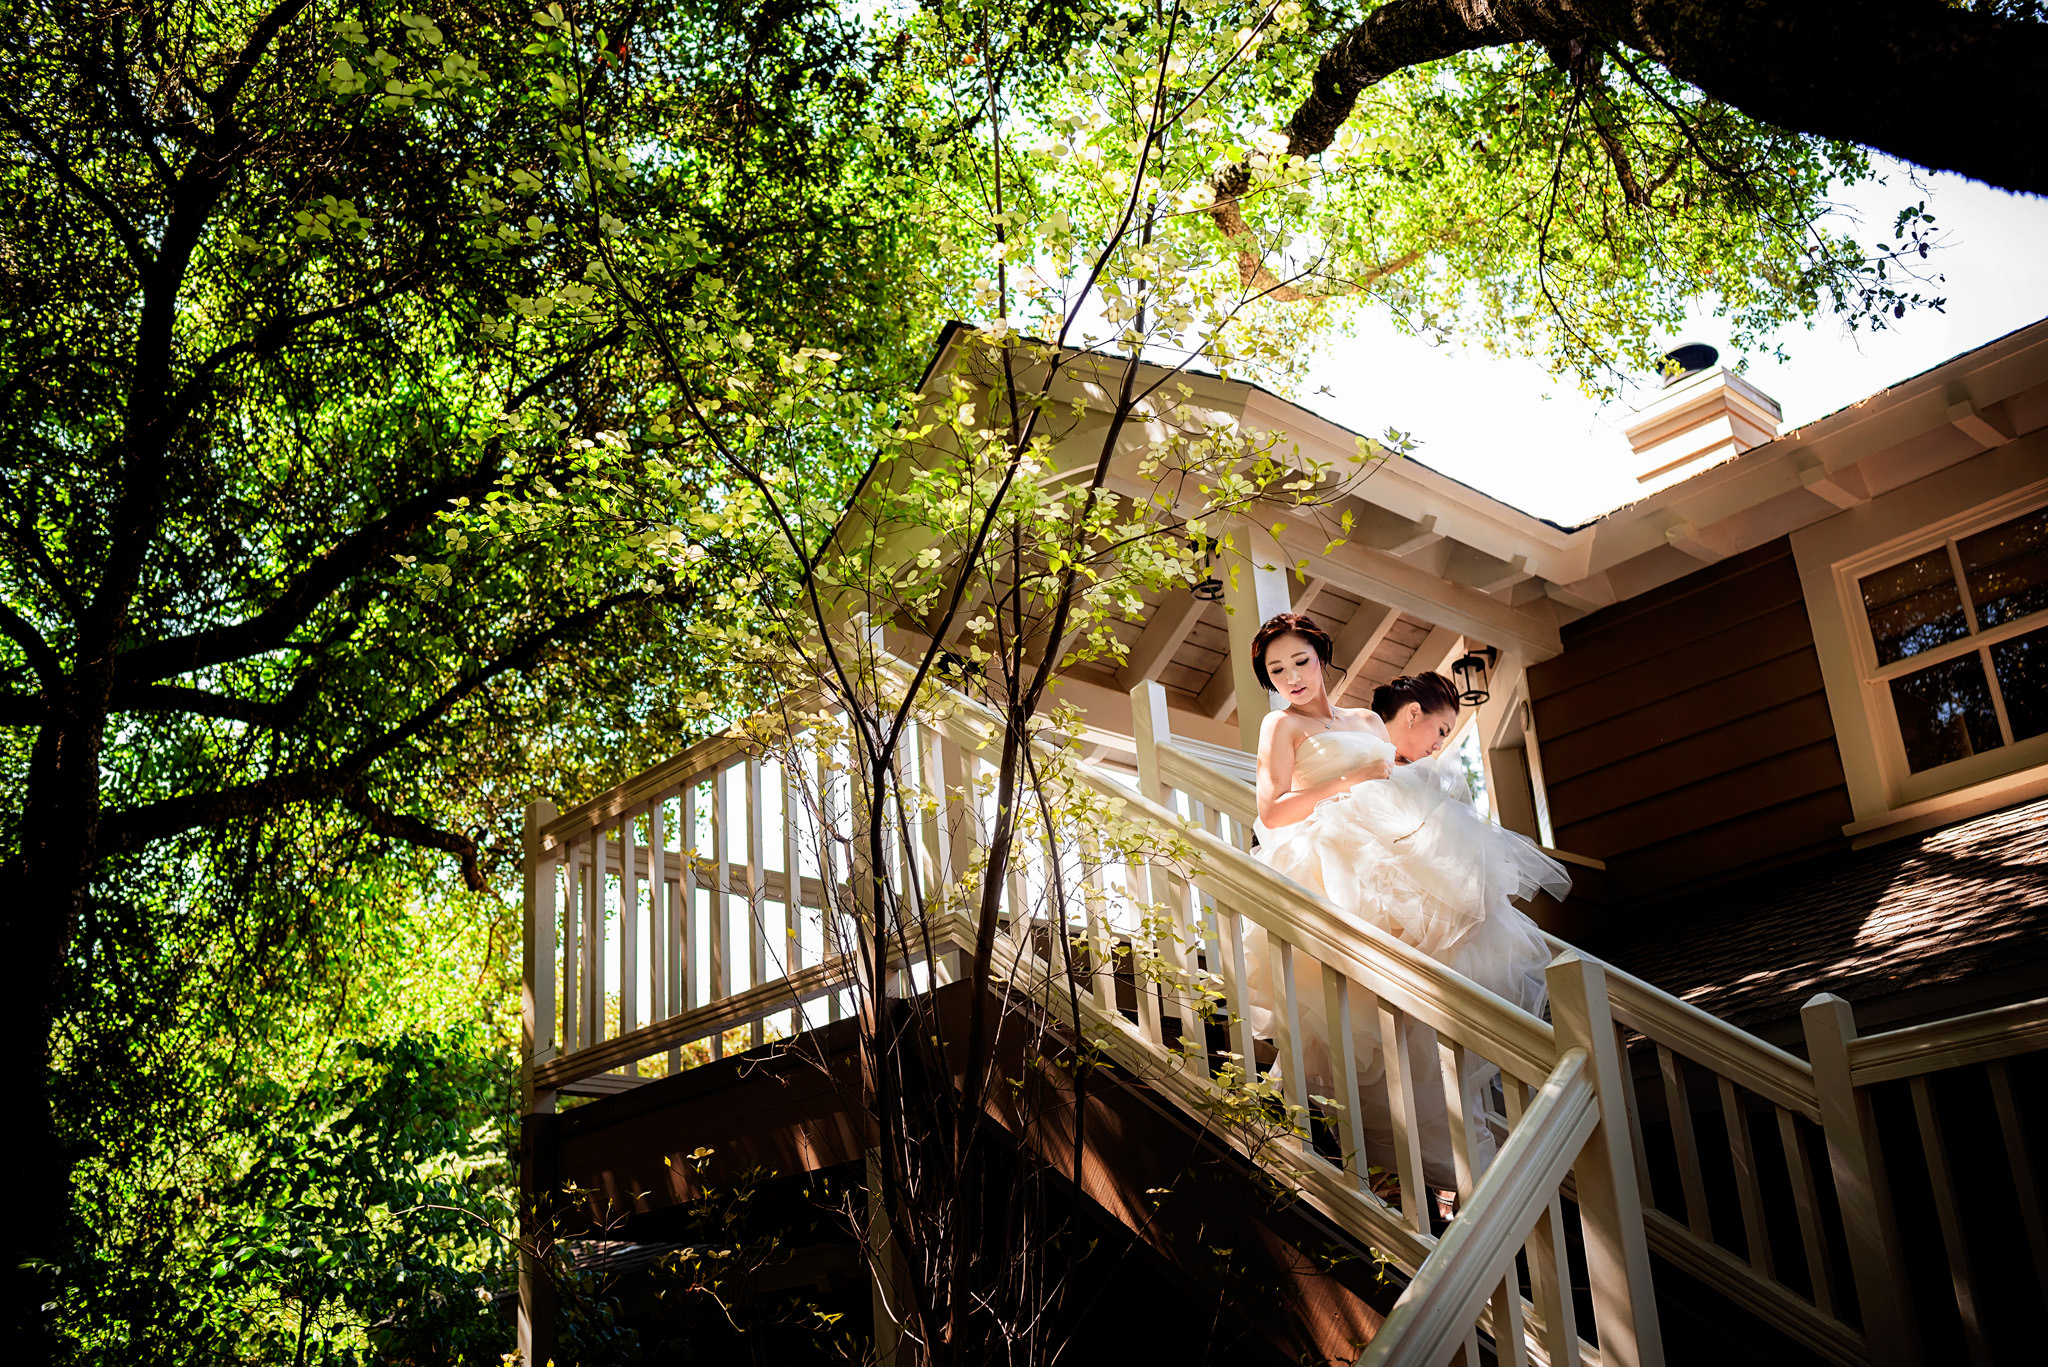 Joyce and Wei's wedding at Meadowood in St. Helena, CA.